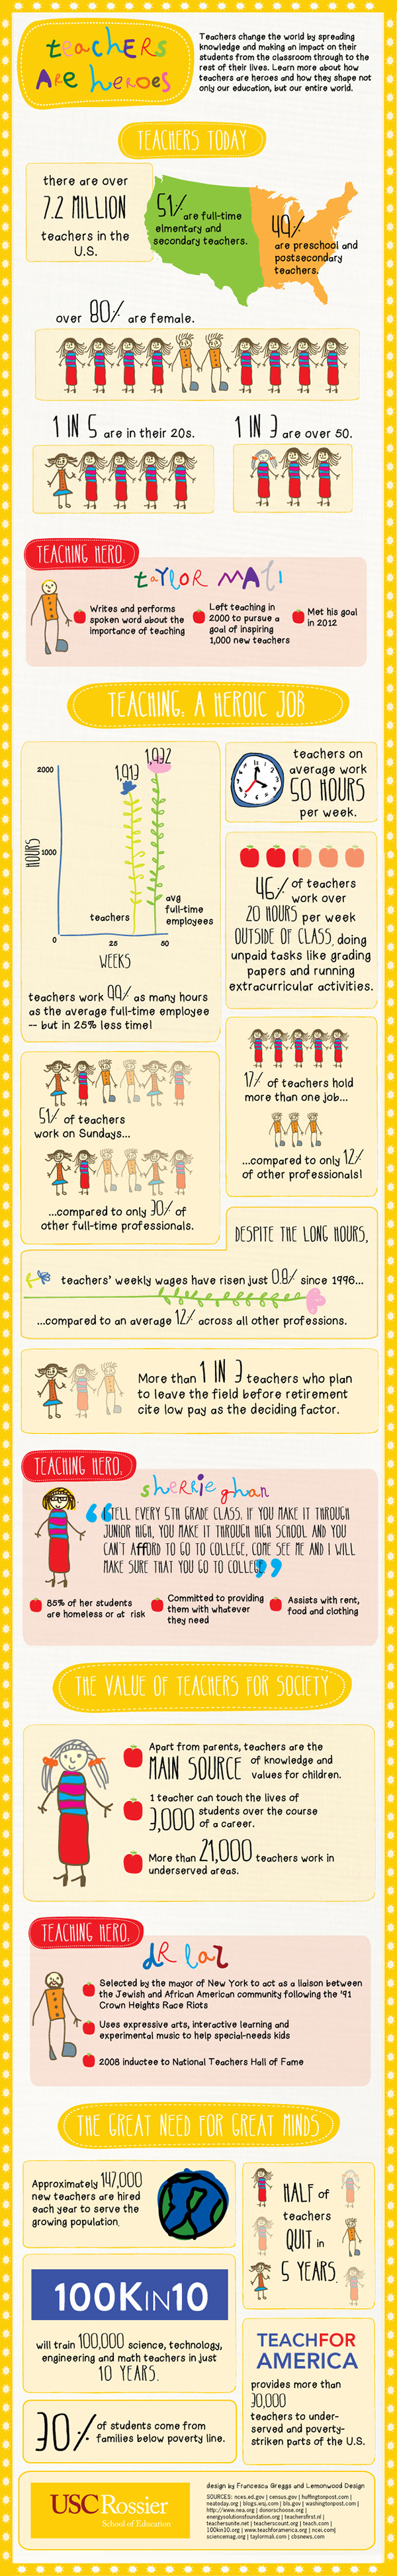 Teacher Appreciation Facts and Statistics